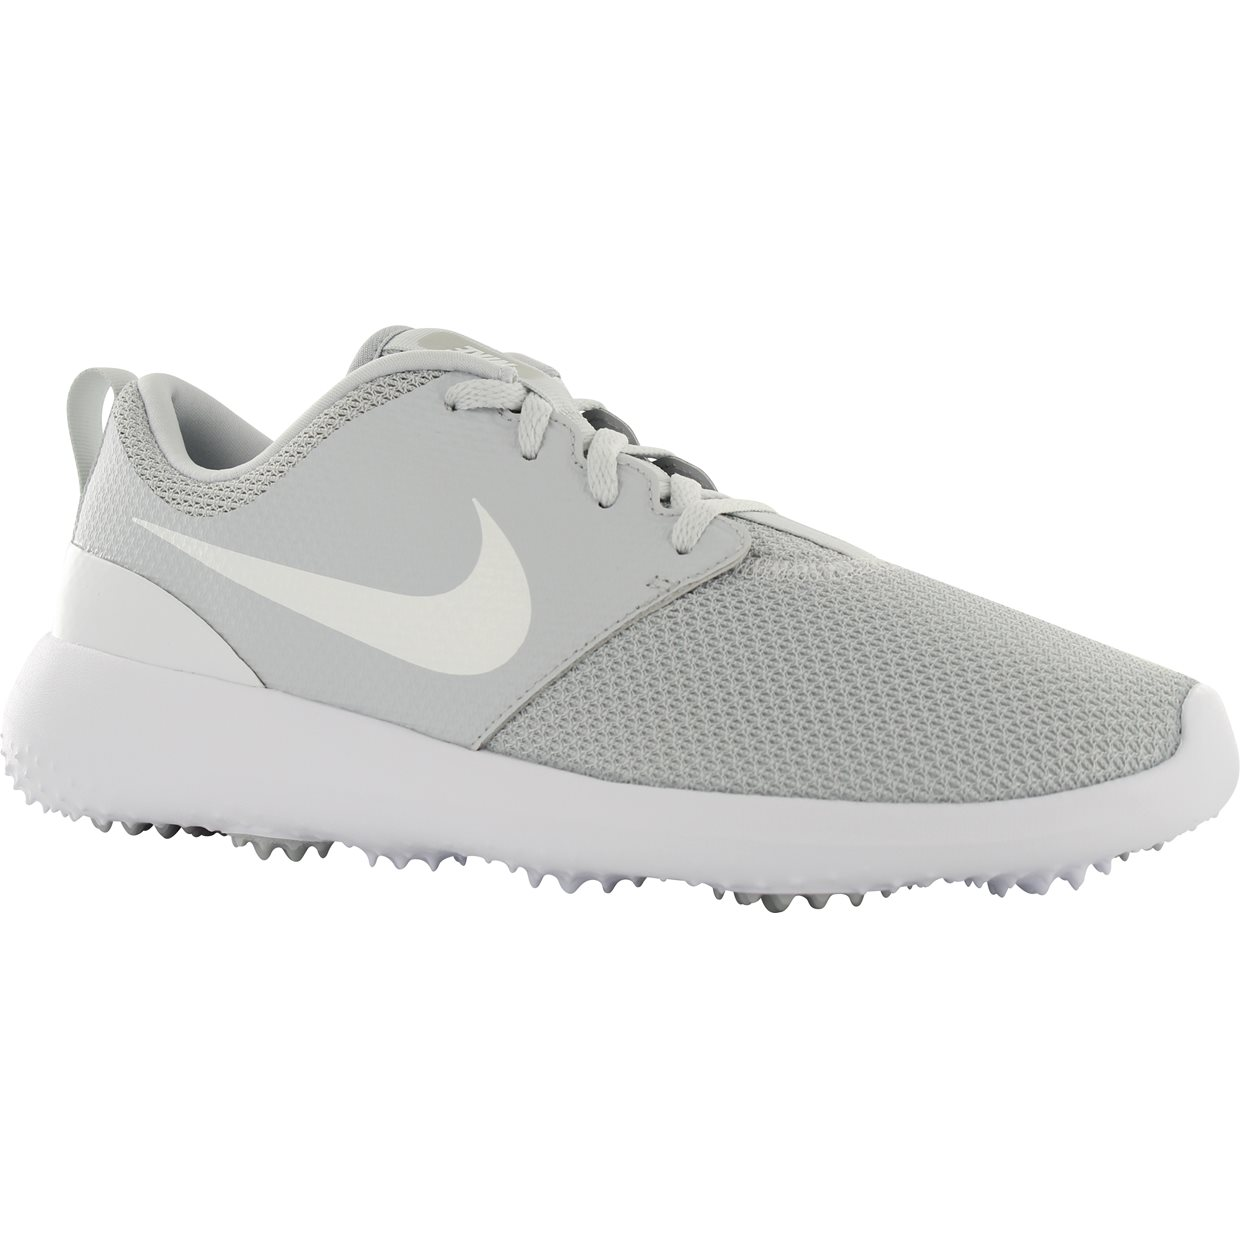 6b378360eb76 Nike Roshe G Spikeless Shoes. Drag 360 Left or Right to View. Alternate  Product Image View 1 ...